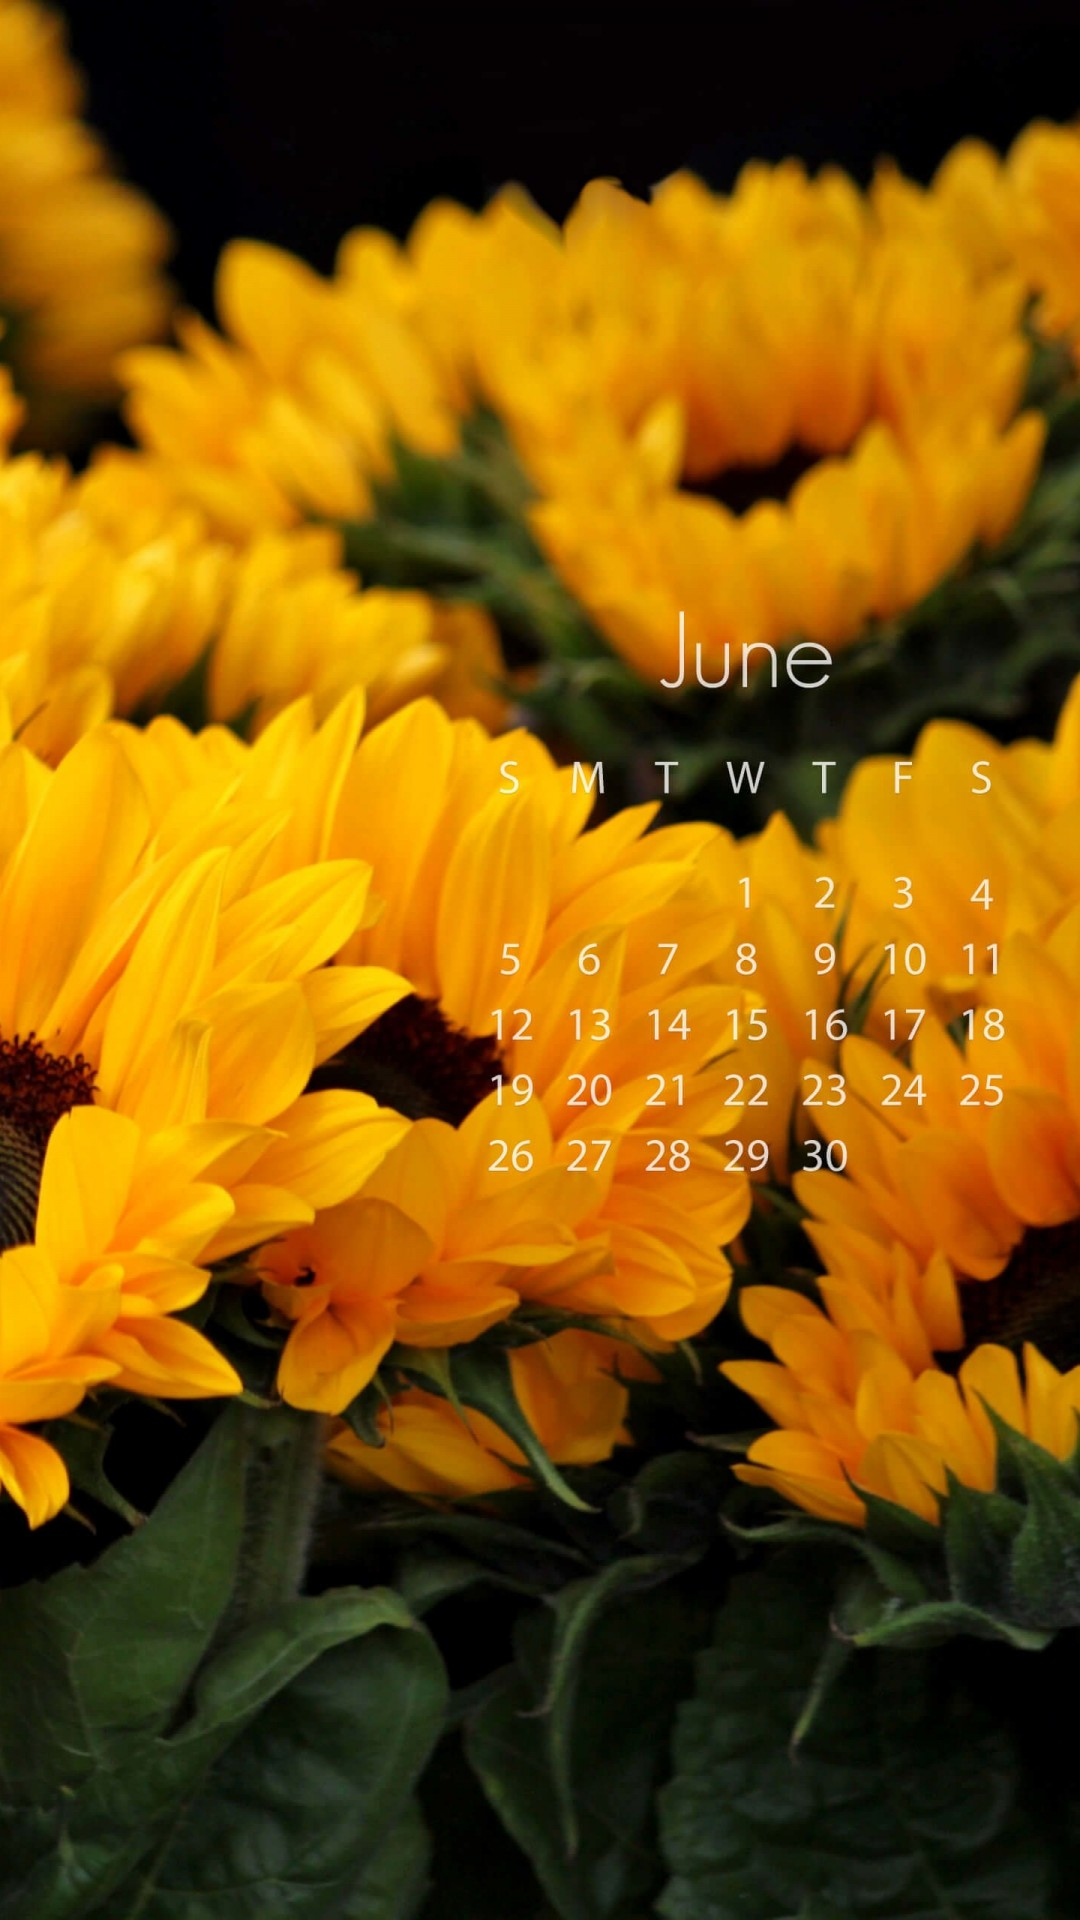 June 2016 Calendar Wallpaper for HTC One